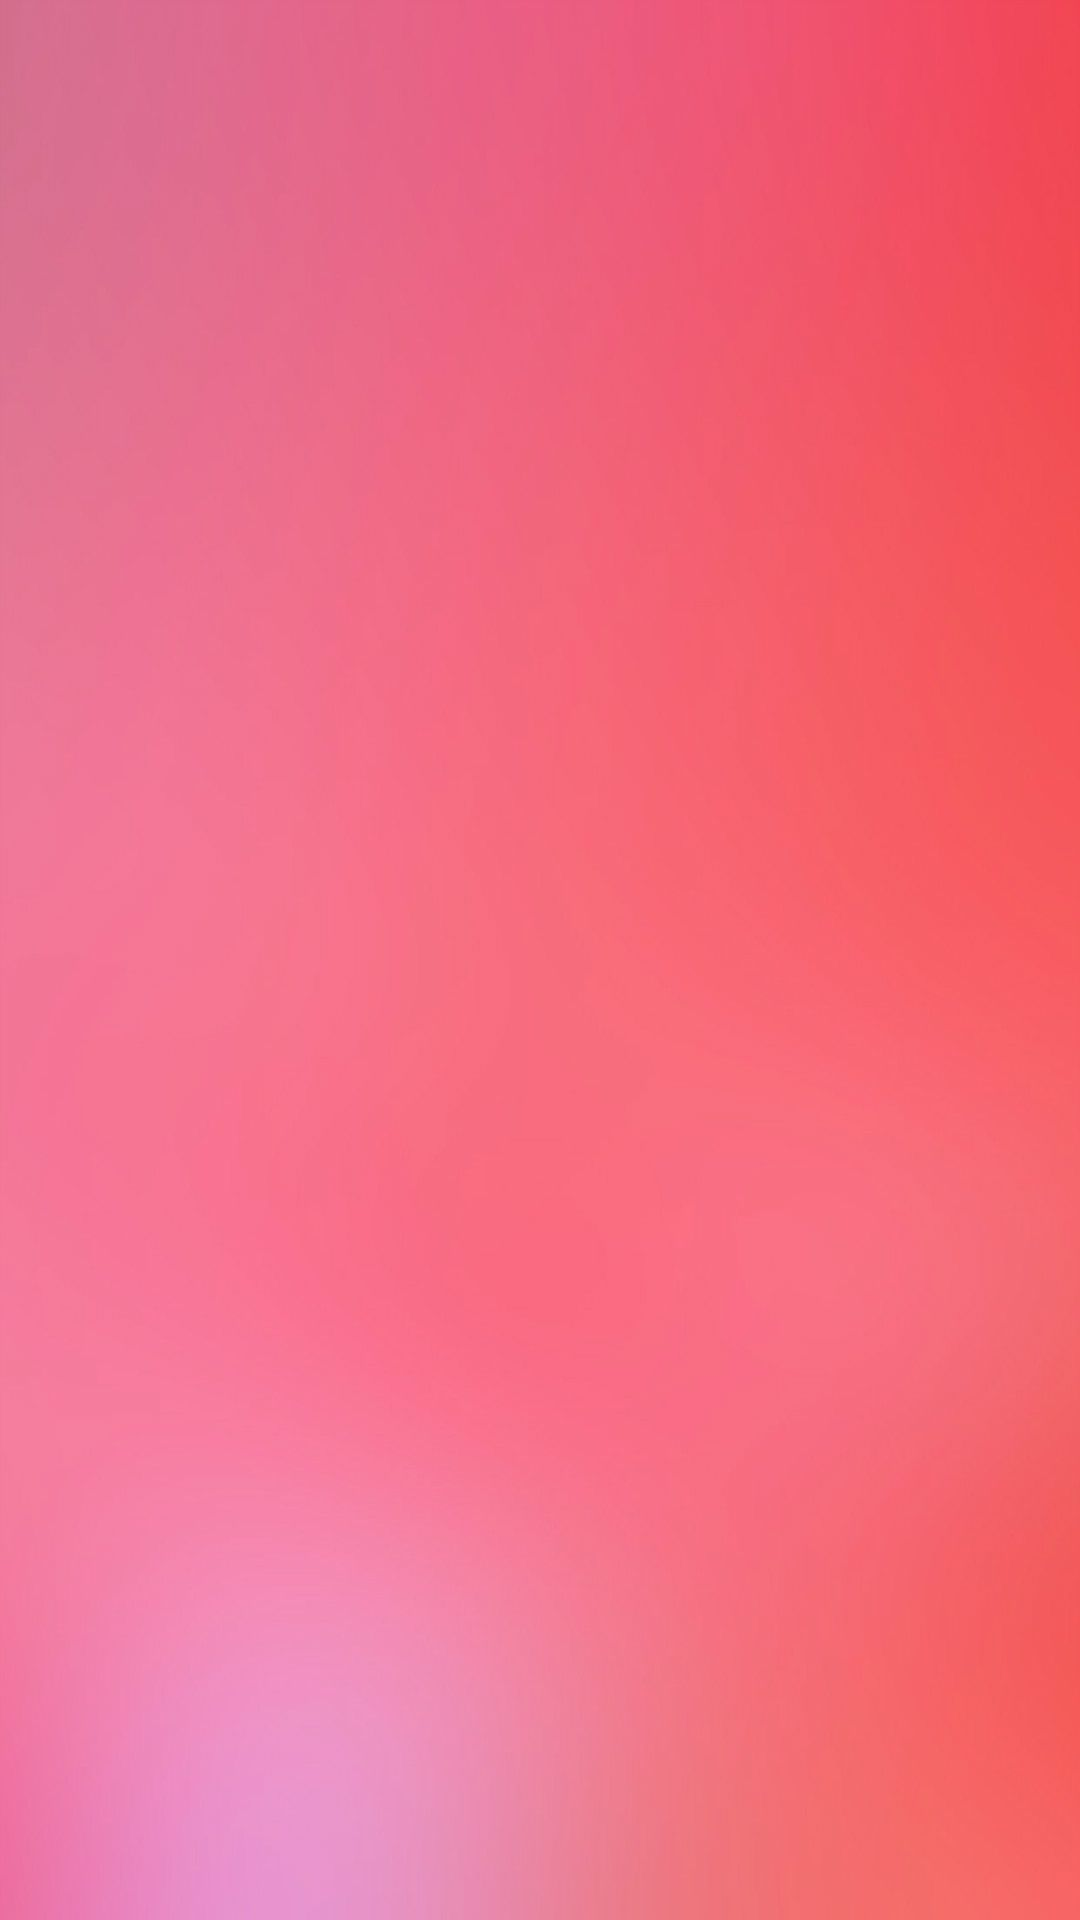 Pink Love First Sight Gradation Blur iPhone 6 wallpaper cl Pinterest Wallpaper and ...